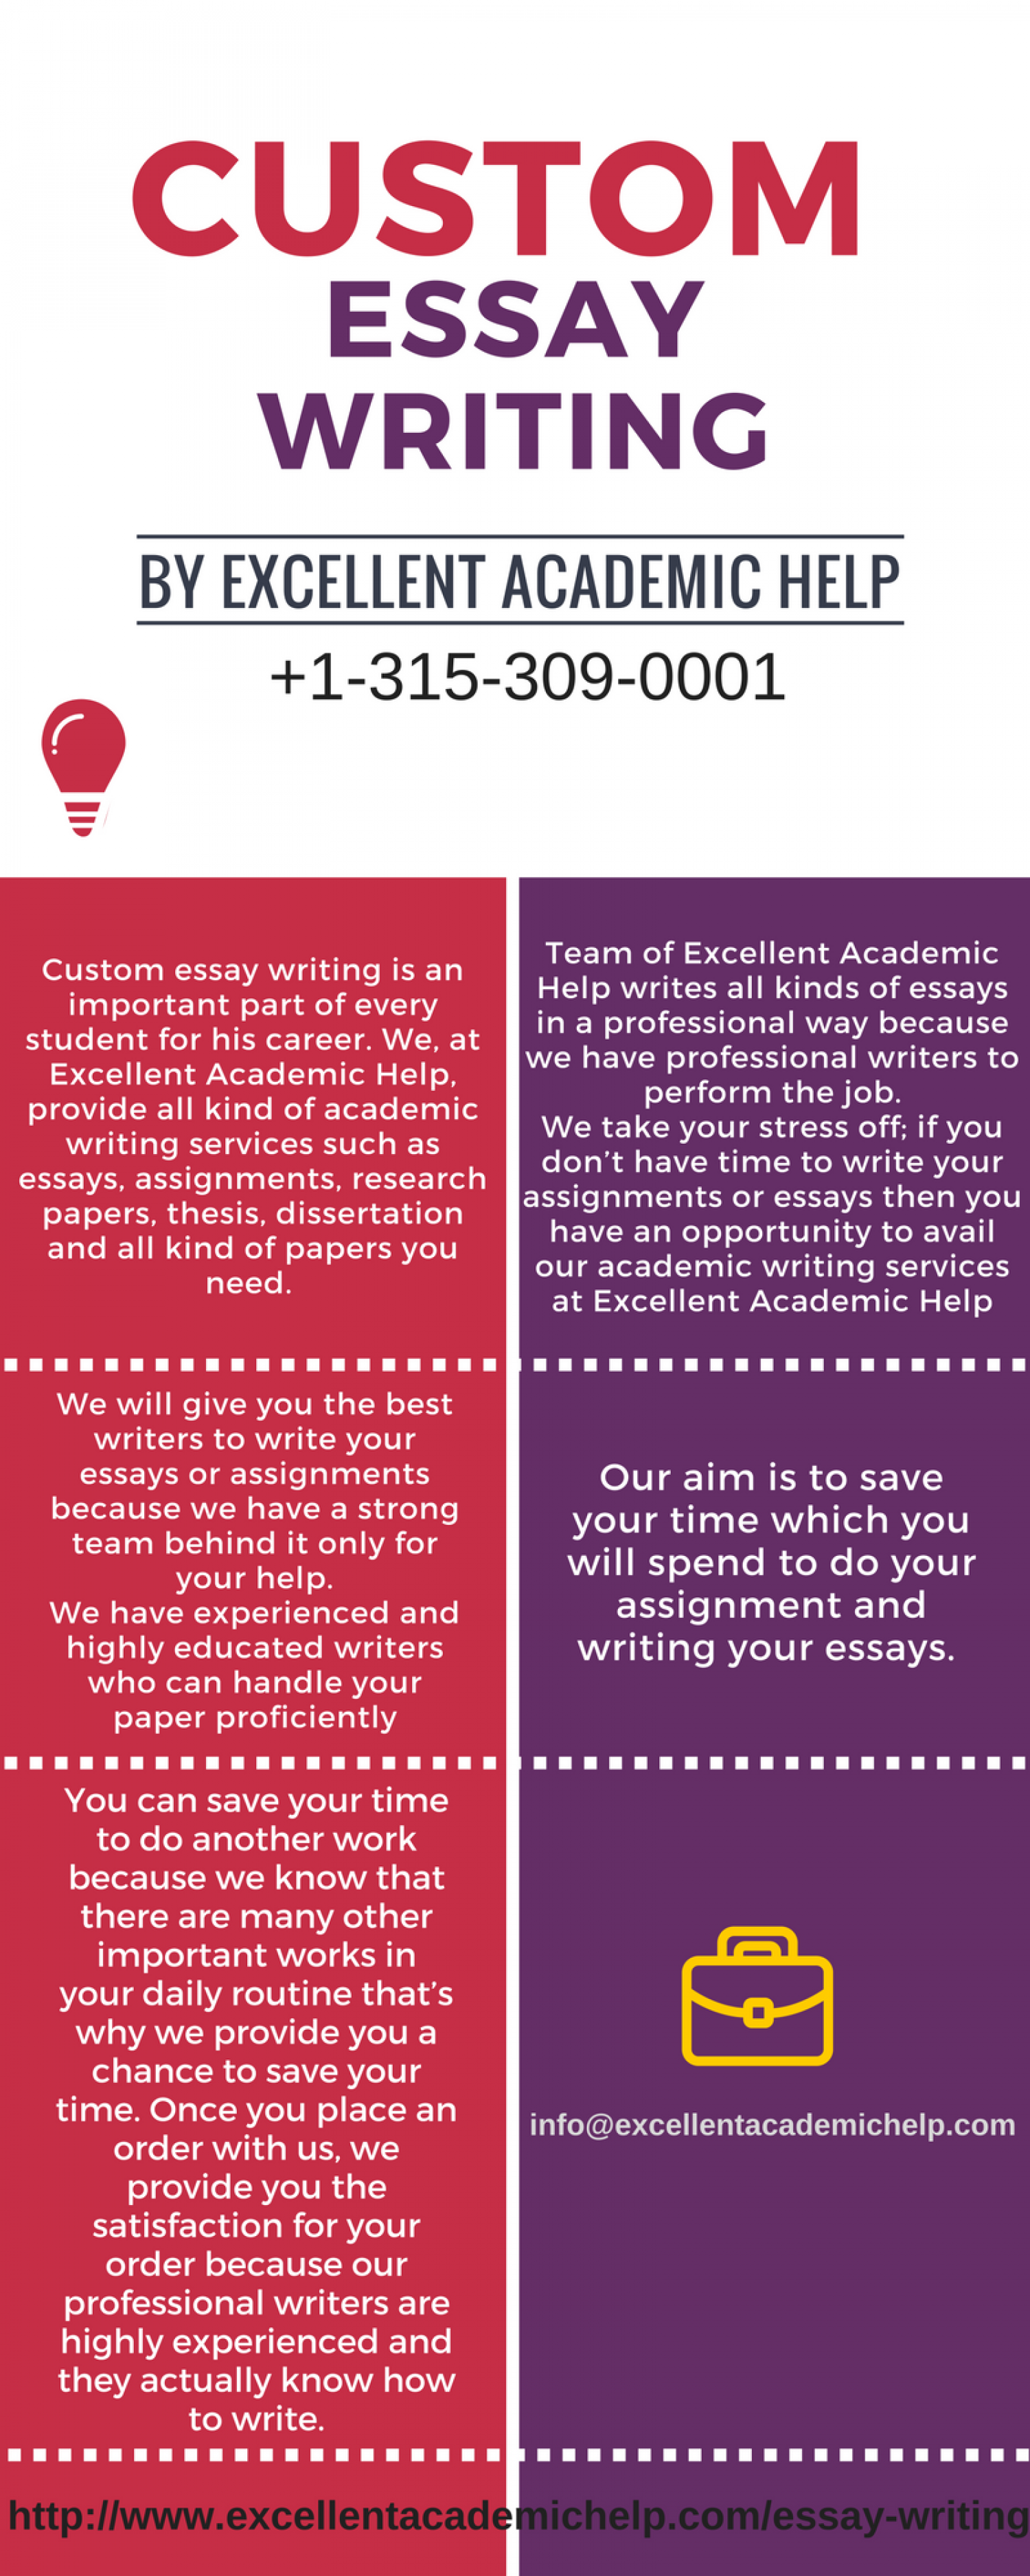 customized essay writing waimeabrewing com many students from all around the world have already entrusted us writing their essays and thats because its who we are we aim at satisfying all our